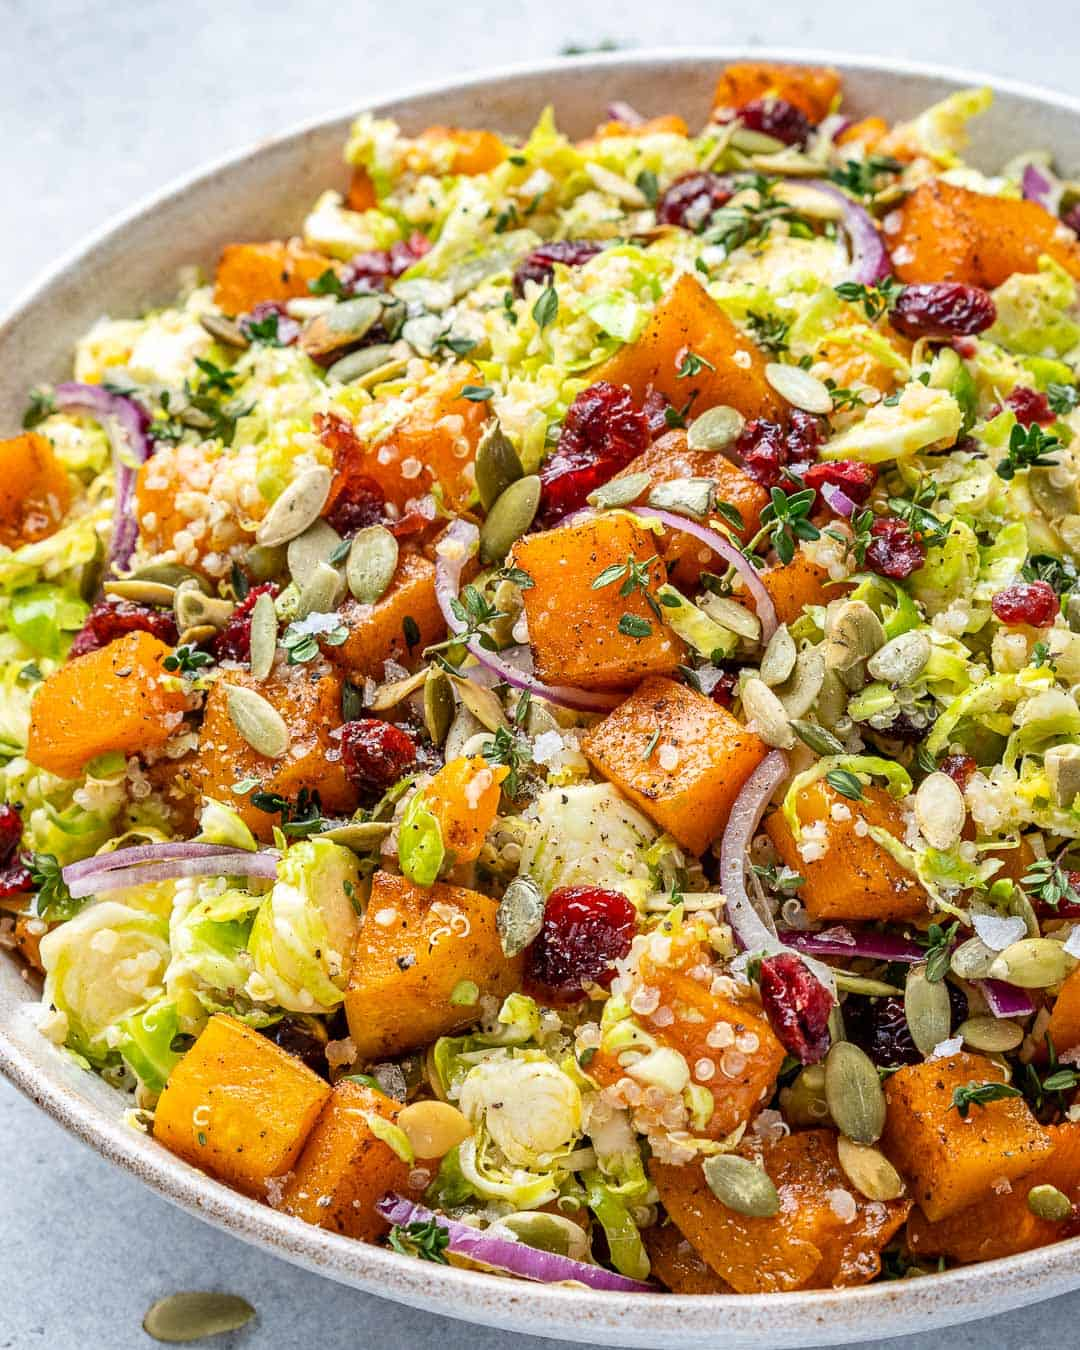 Angled view of bowl with butternut squash salad.